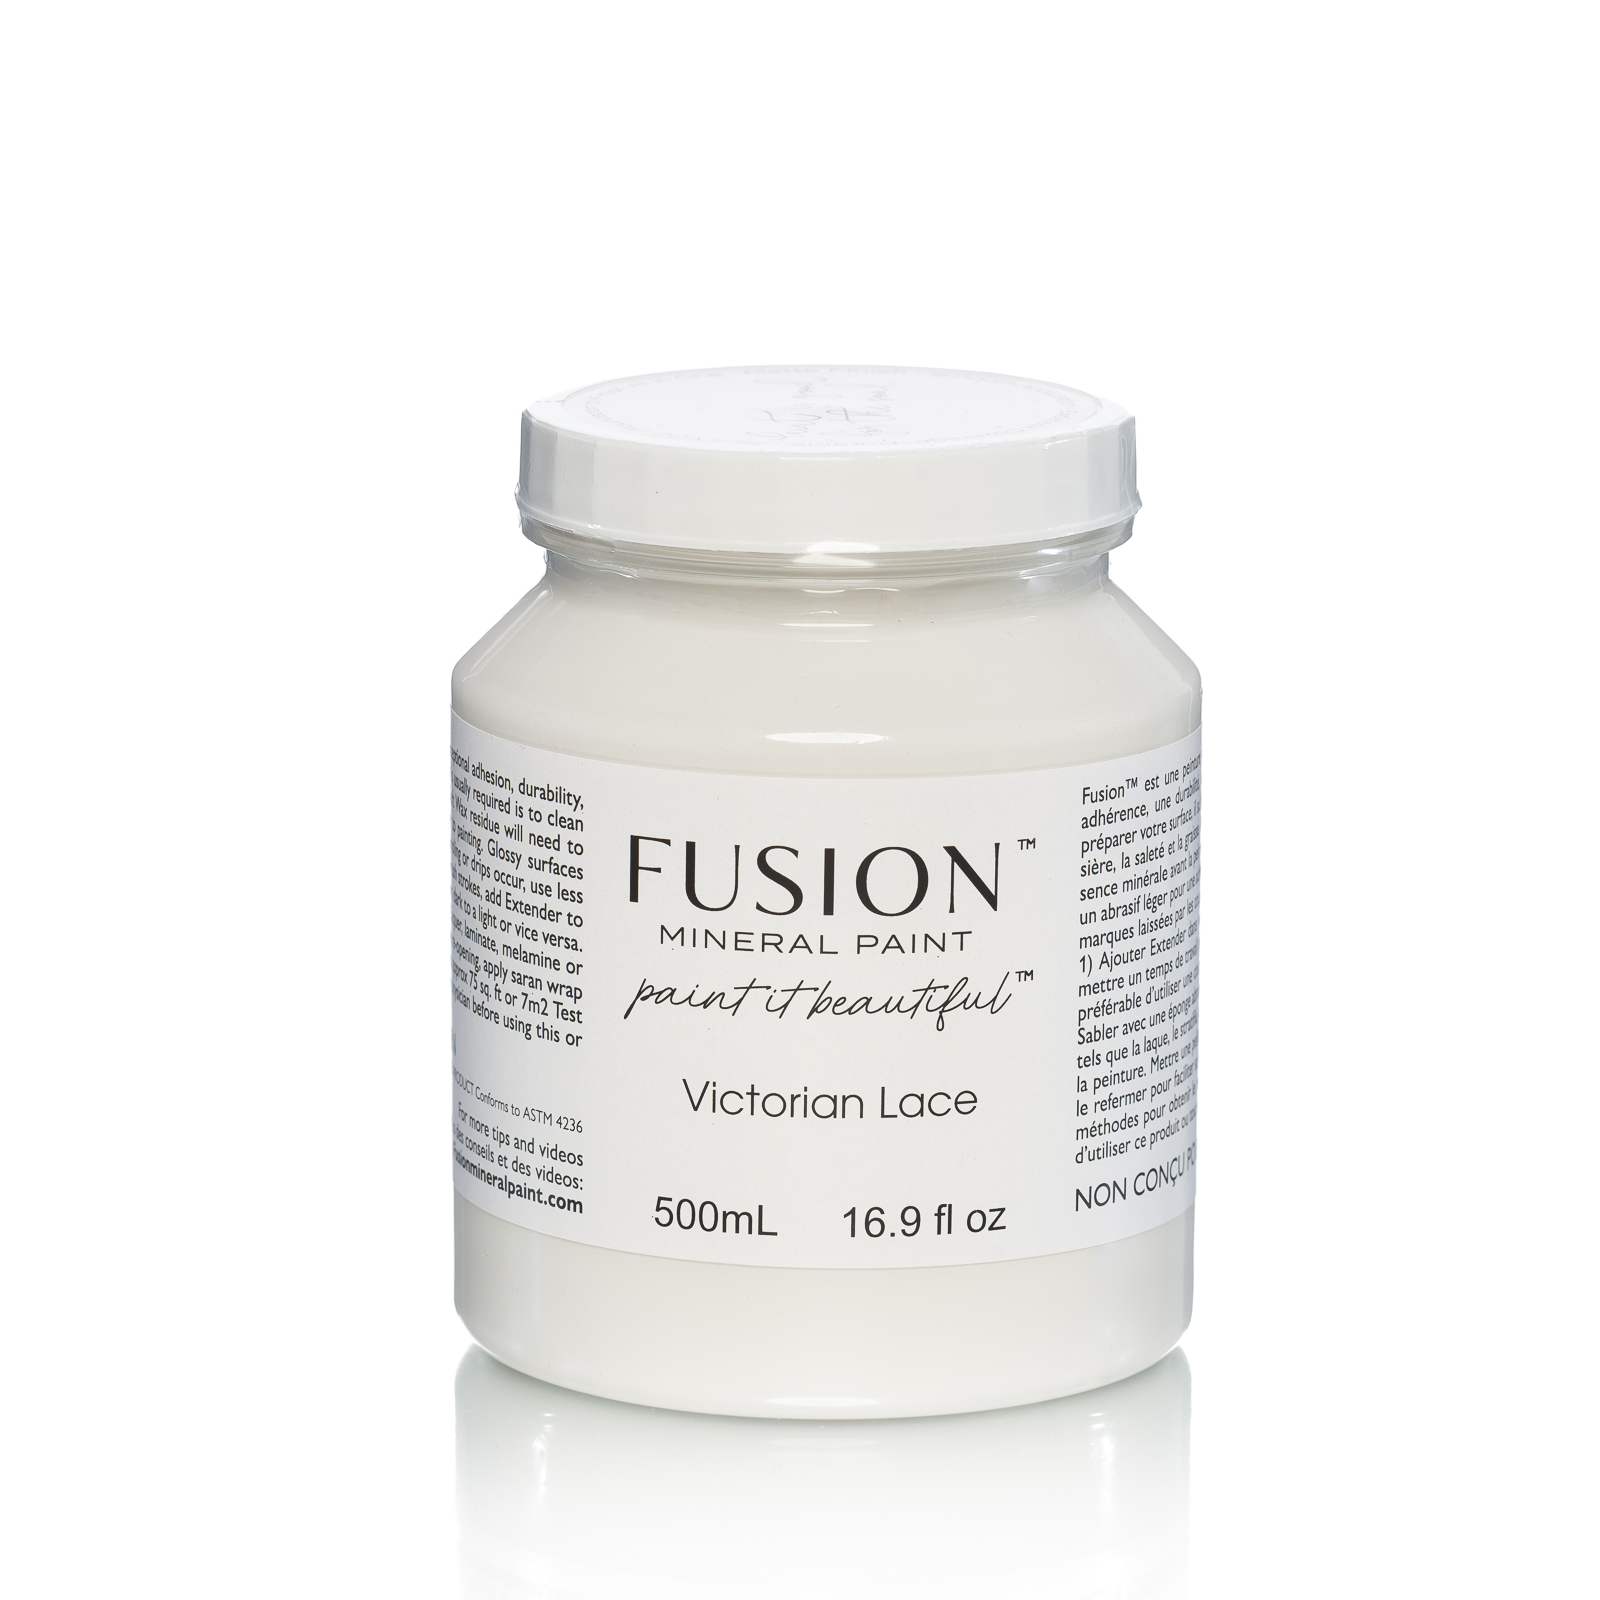 Fusion Mineral Paint Fusion - Victorian Lace - 500ml